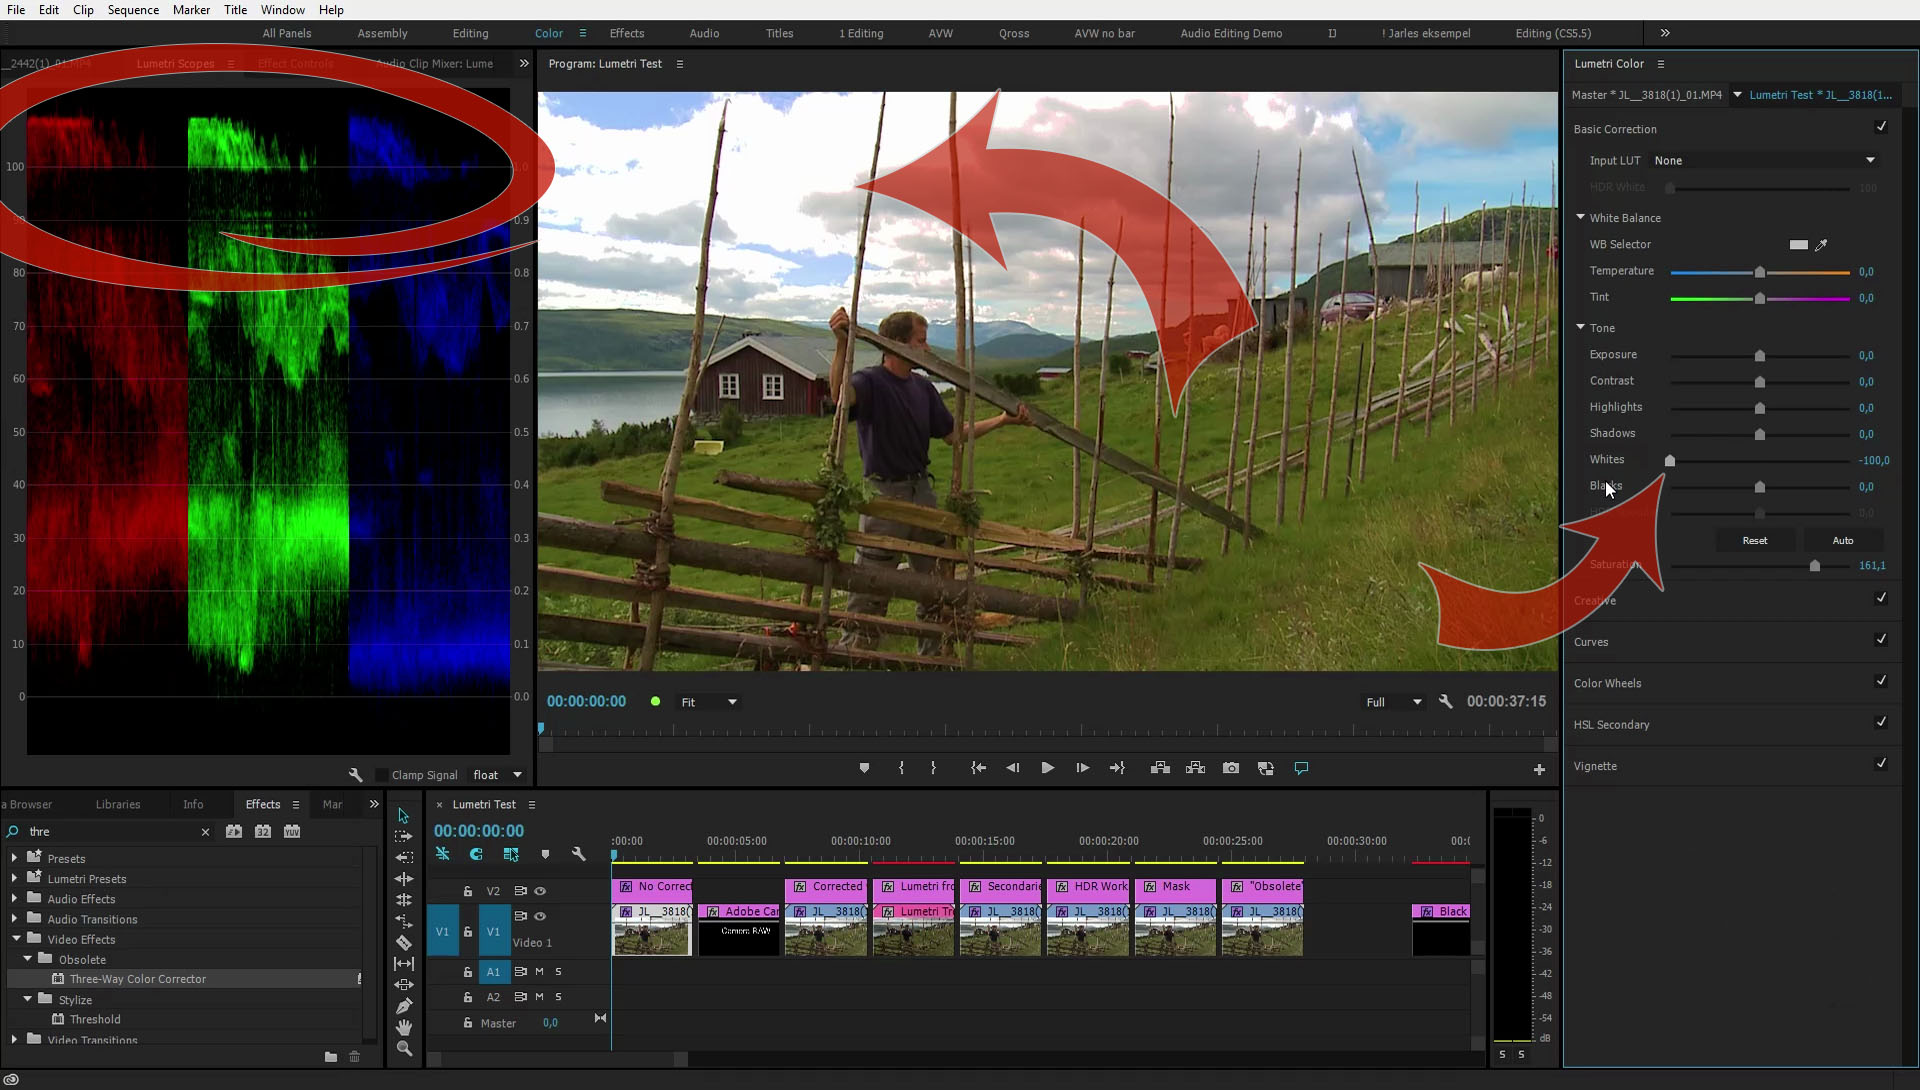 How to use templates in Premiere Pro - PremierePro.net